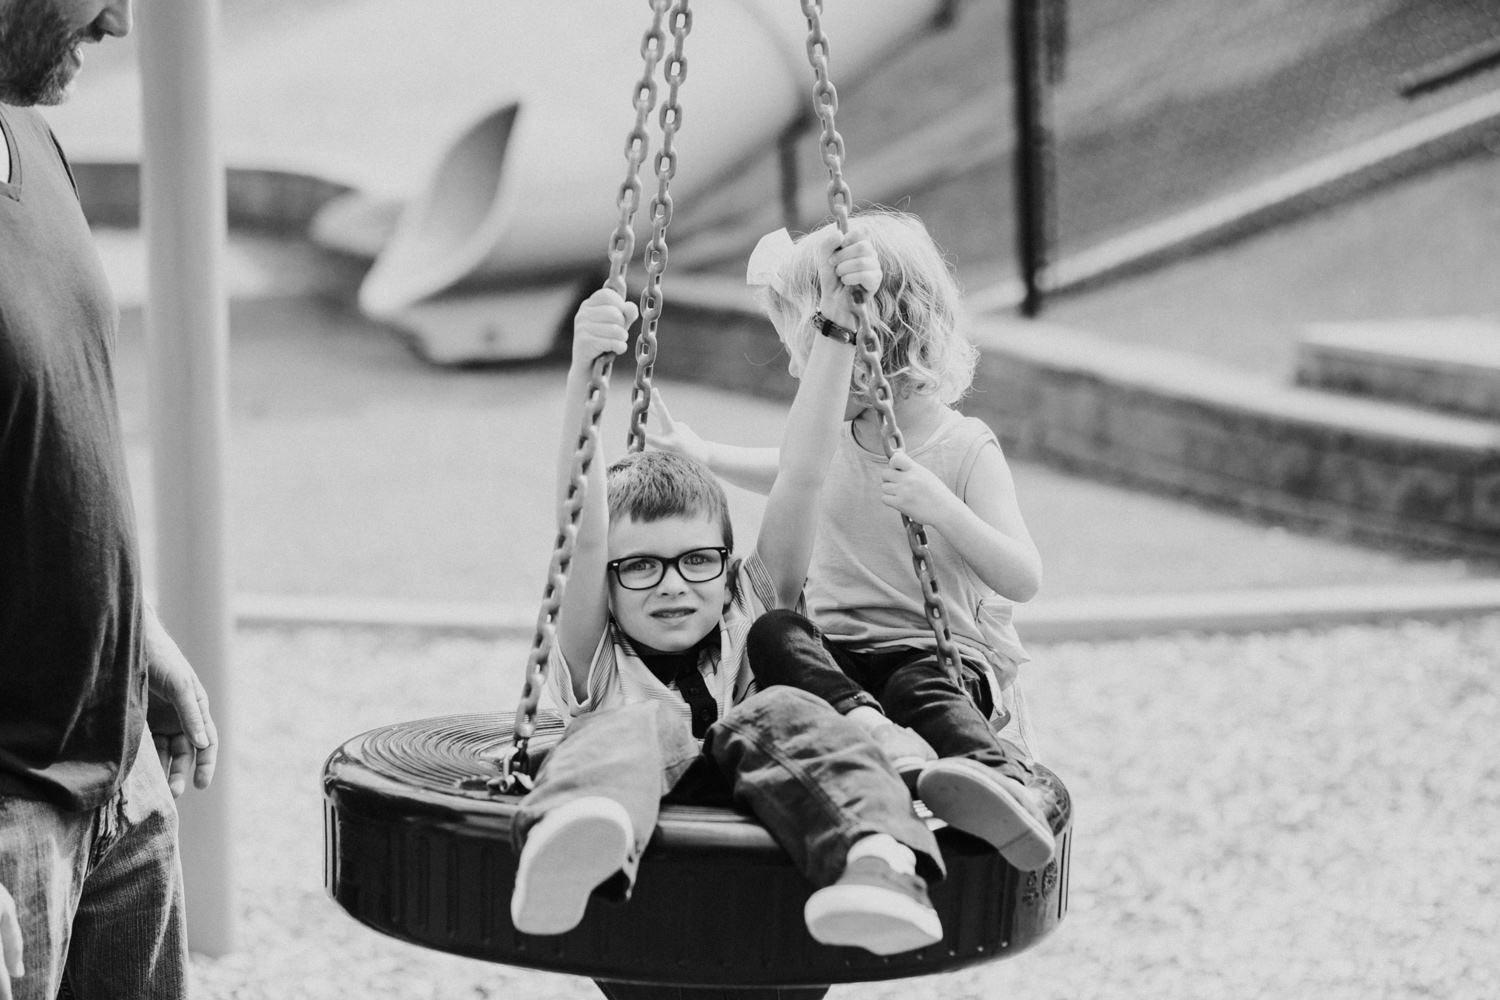 quilchena-park-family-photography-quilchena-park-lifestlye-family-photographer-julie-dorge (16 of 56).jpg